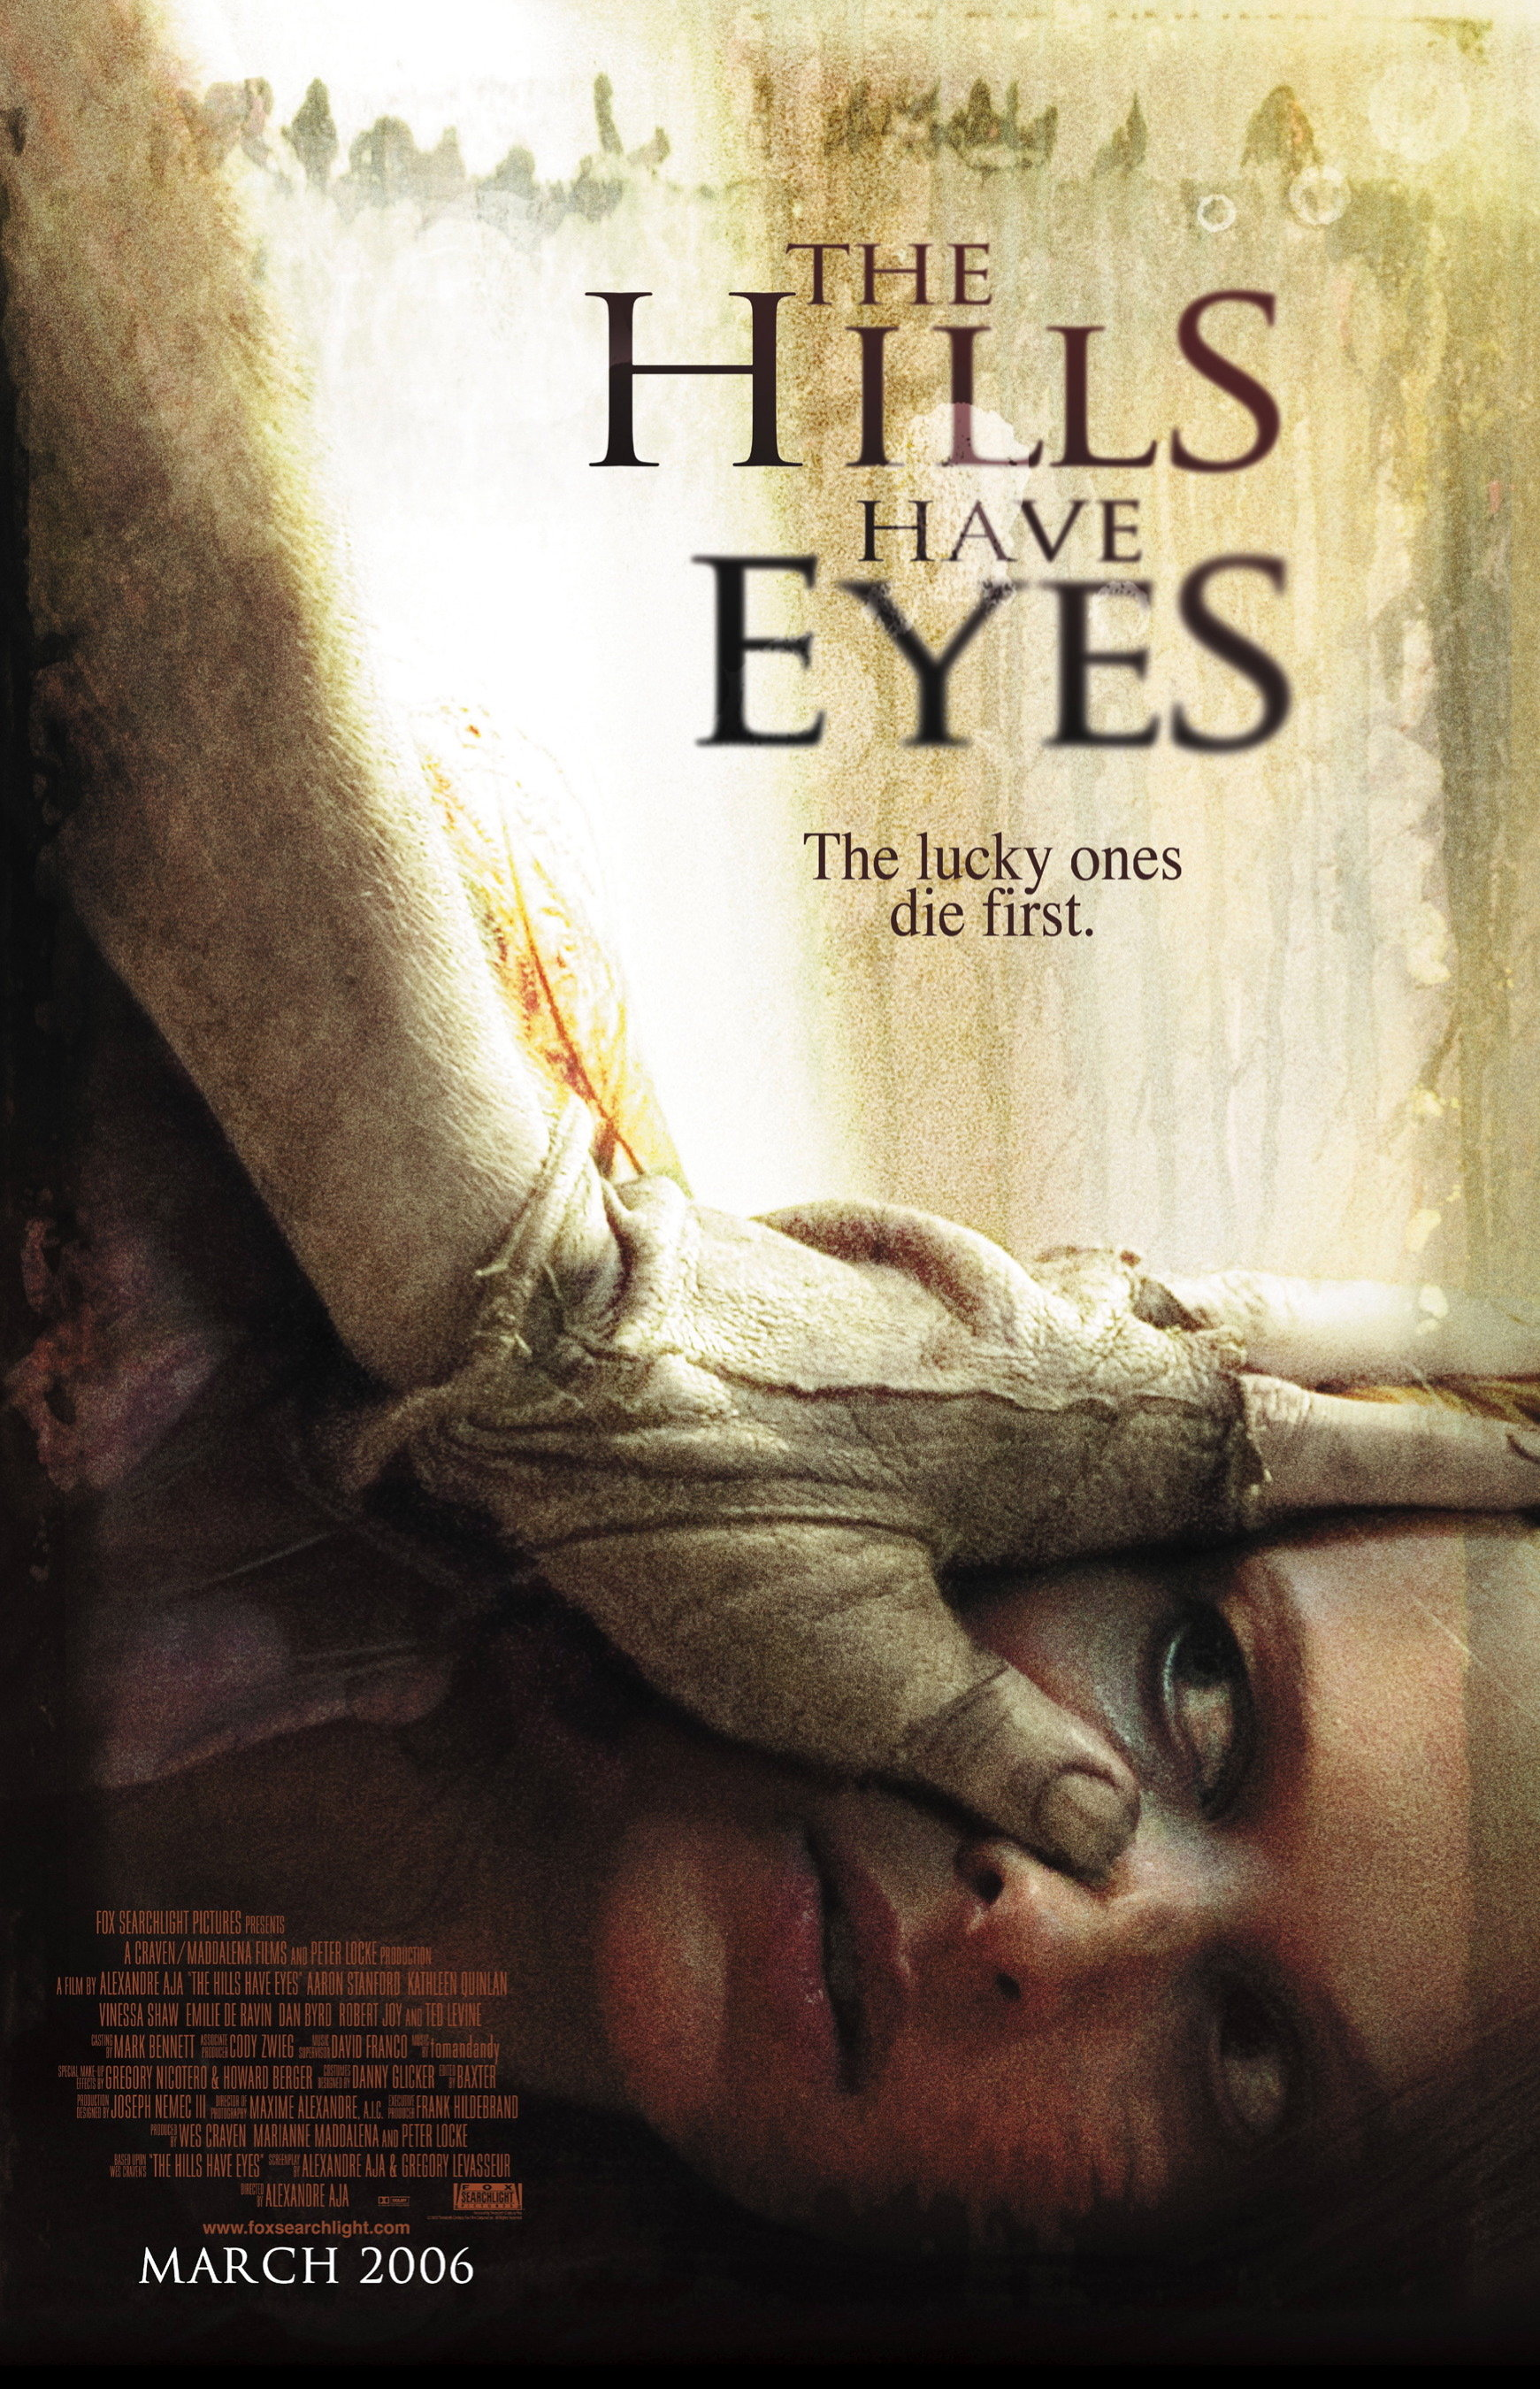 The hills have eyes 2 watch online